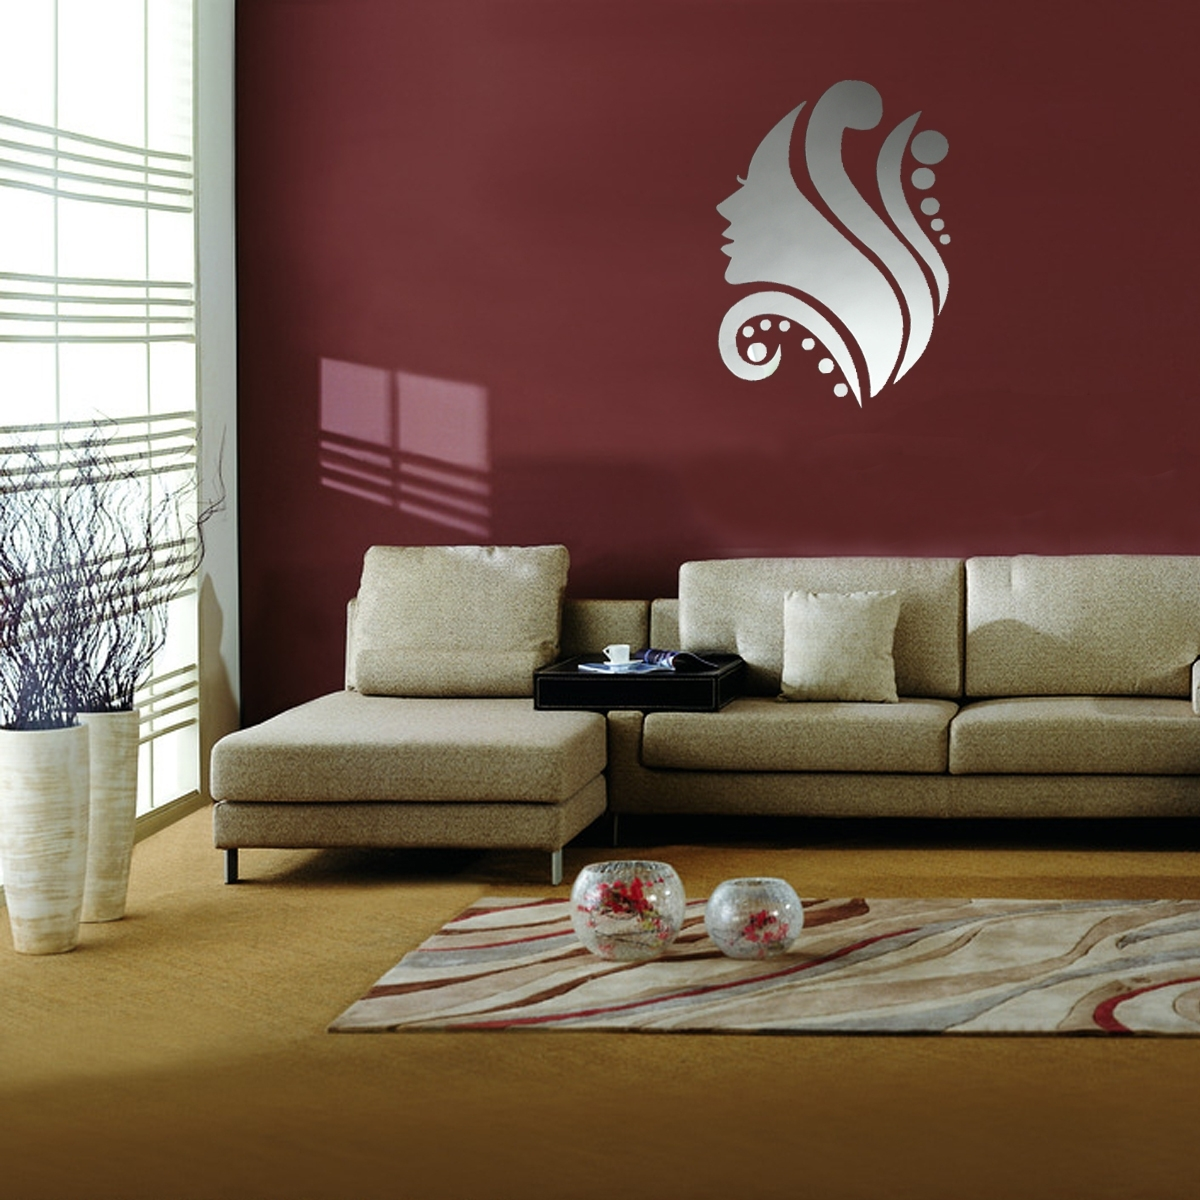 Favorite Interior: Home Decoration Ideas Using Blank Wall Decoration With With Maroon Wall Accents (View 5 of 15)